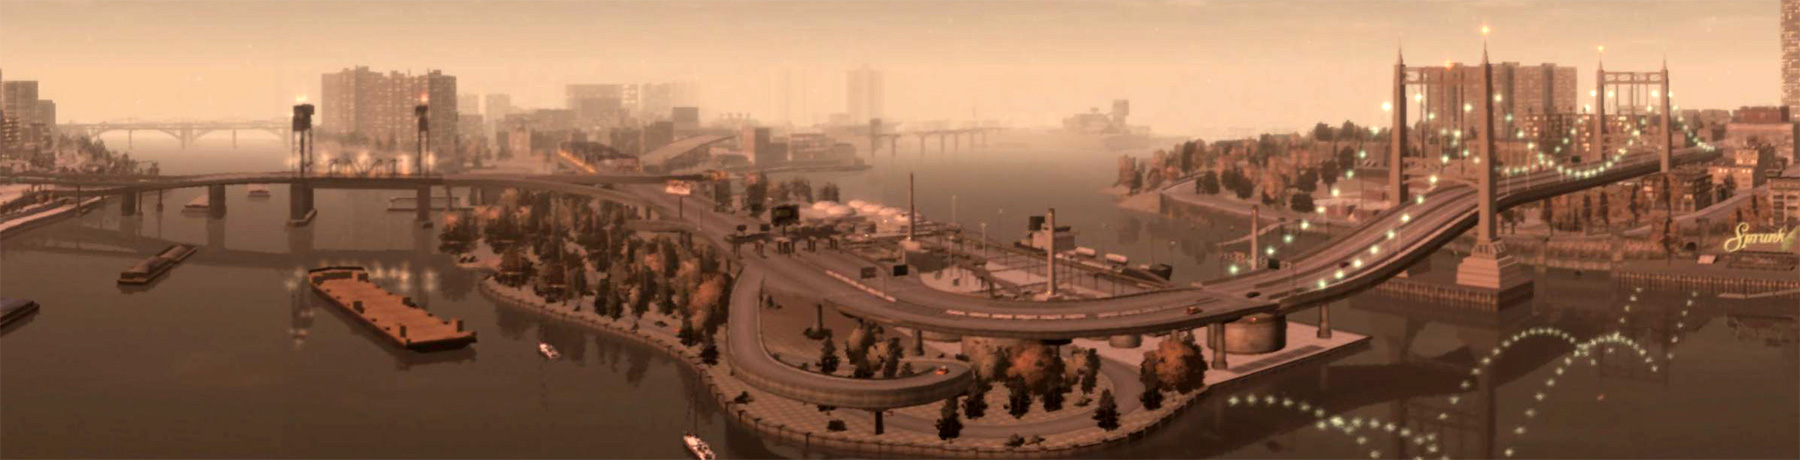 Not the coolest-looking bridge, but it does give you a nice view of the main downtown area.